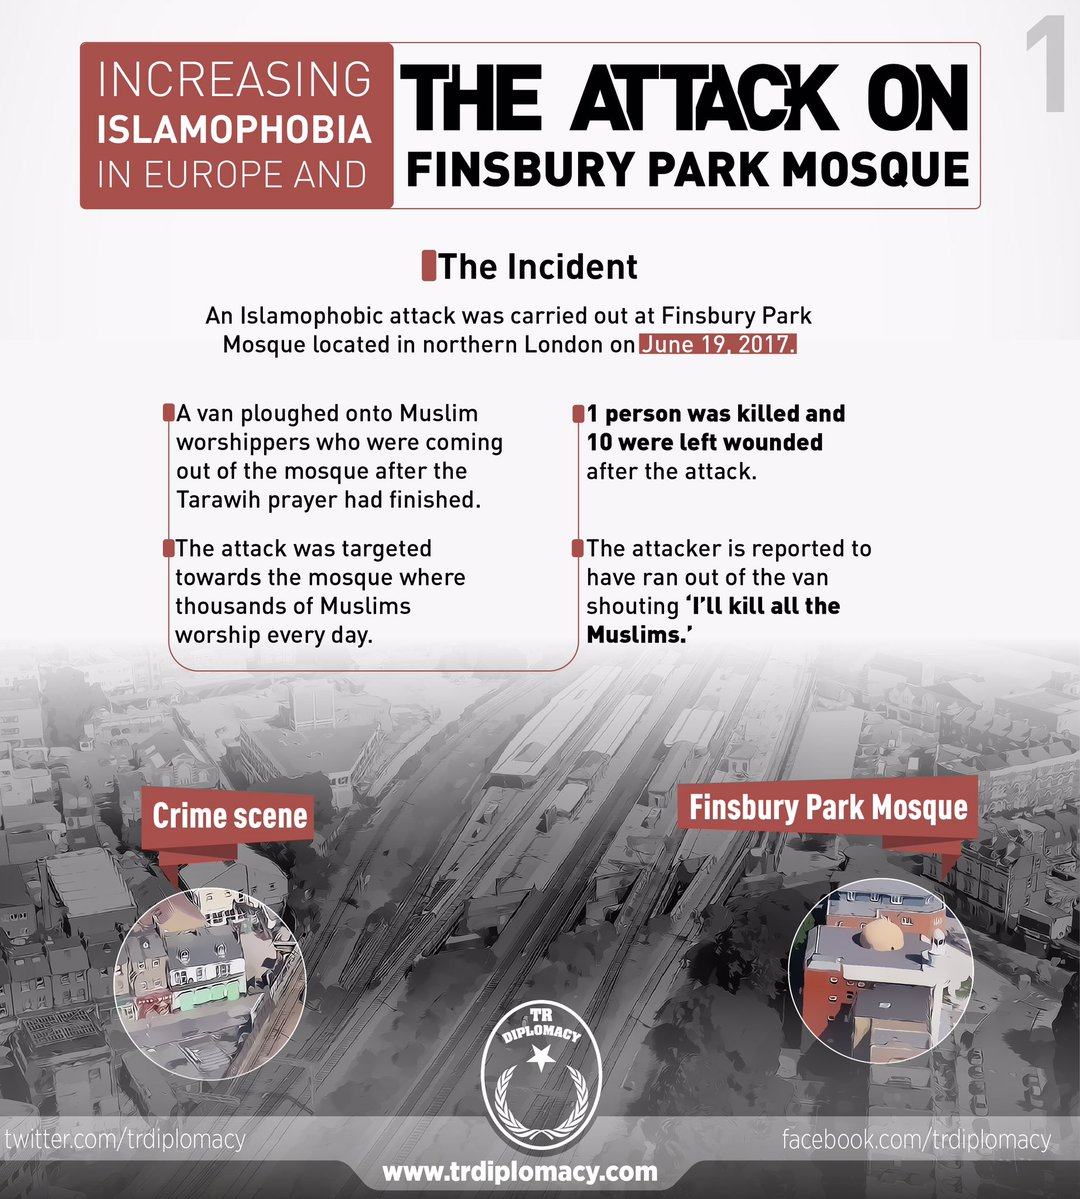 Escalating anti-Islamism in Europe and the terror attack on Finsbury Park Mosque